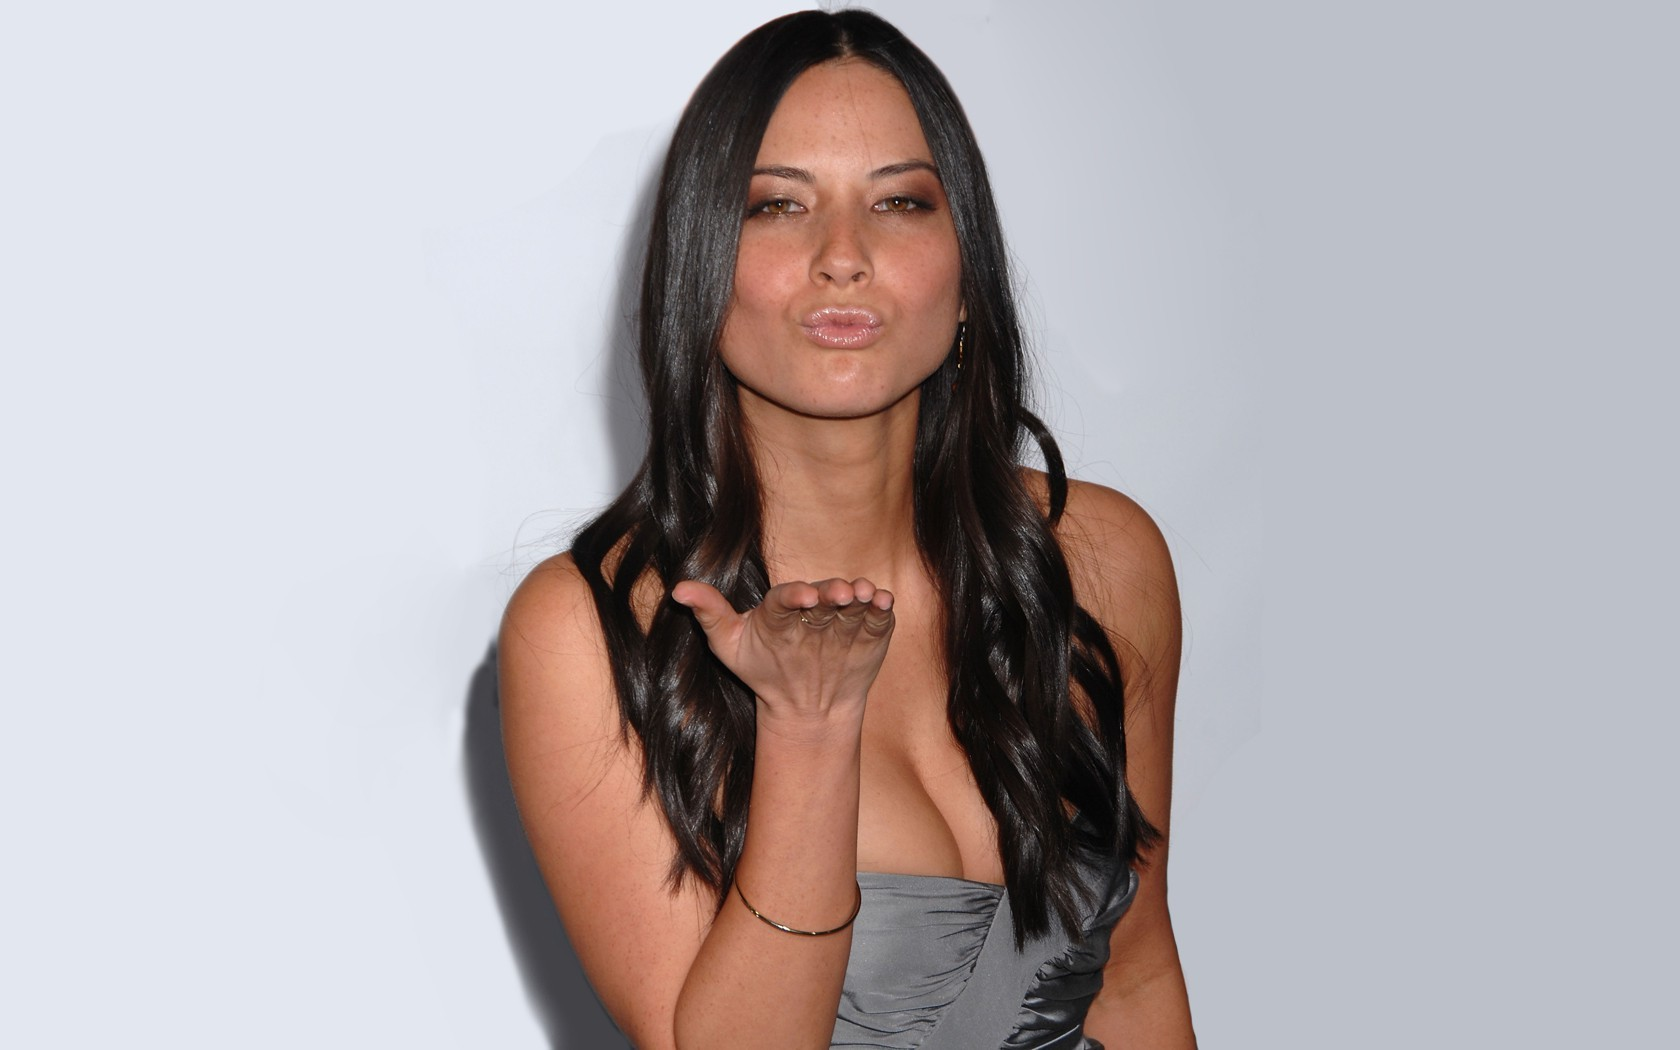 olivia-munn-showing-boobs